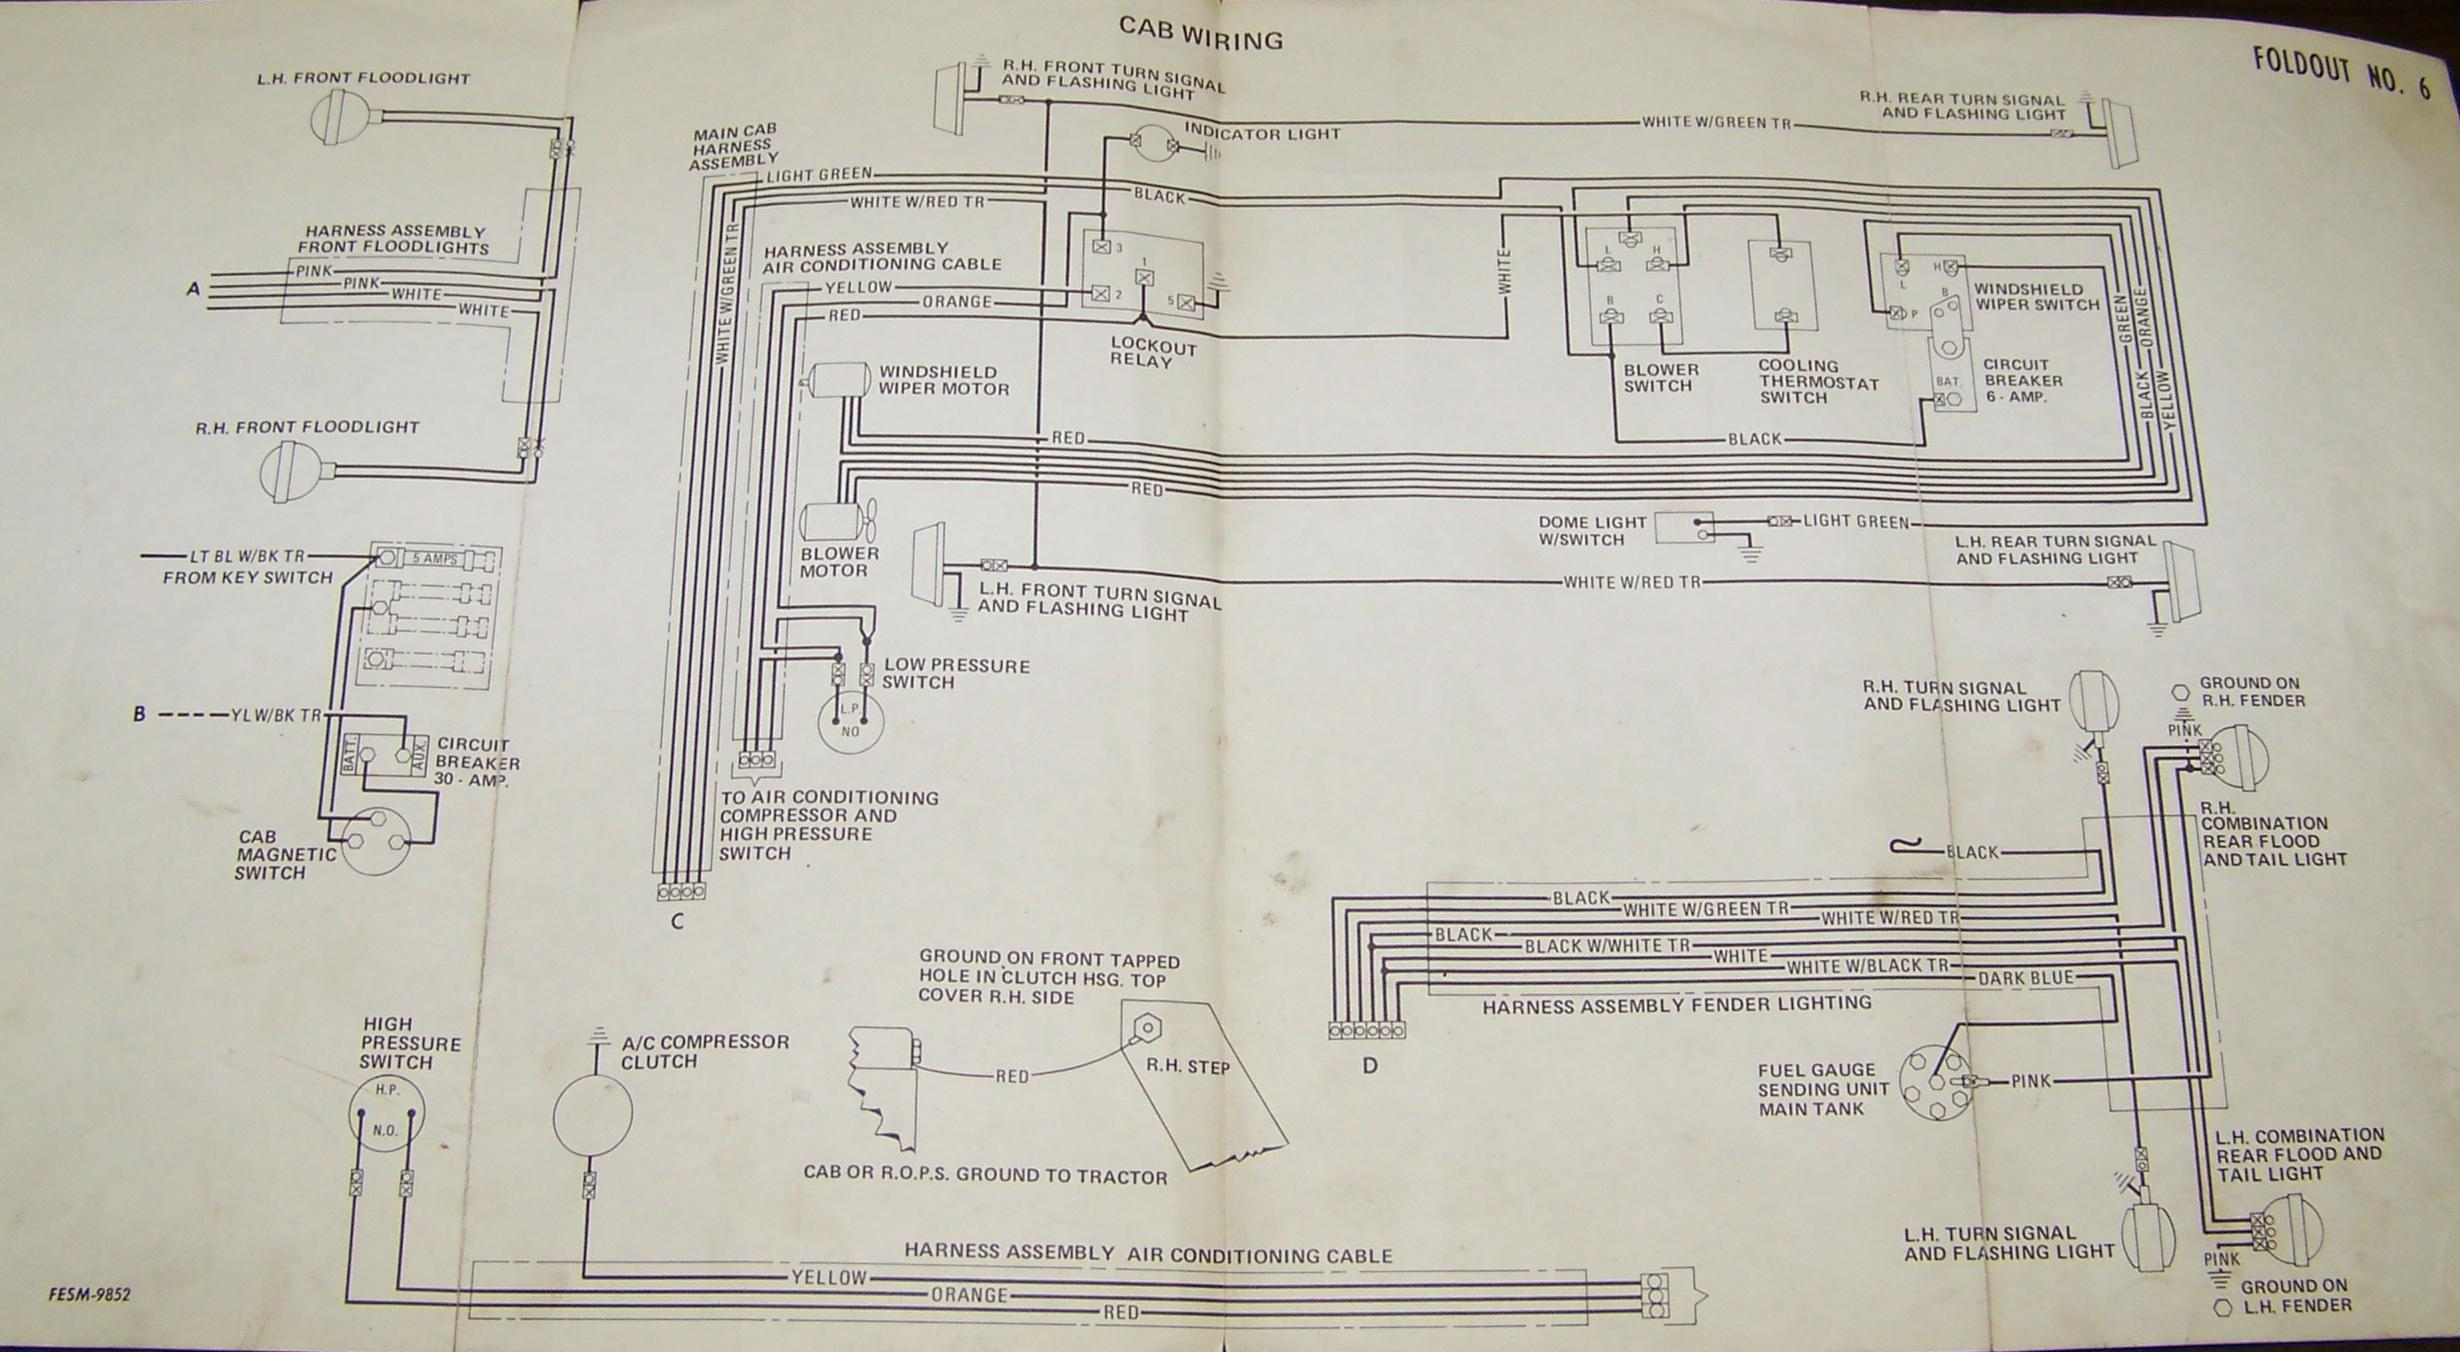 86series6 international motor diagrams ge electric motor wiring diagram 856 international wiring harness at honlapkeszites.co